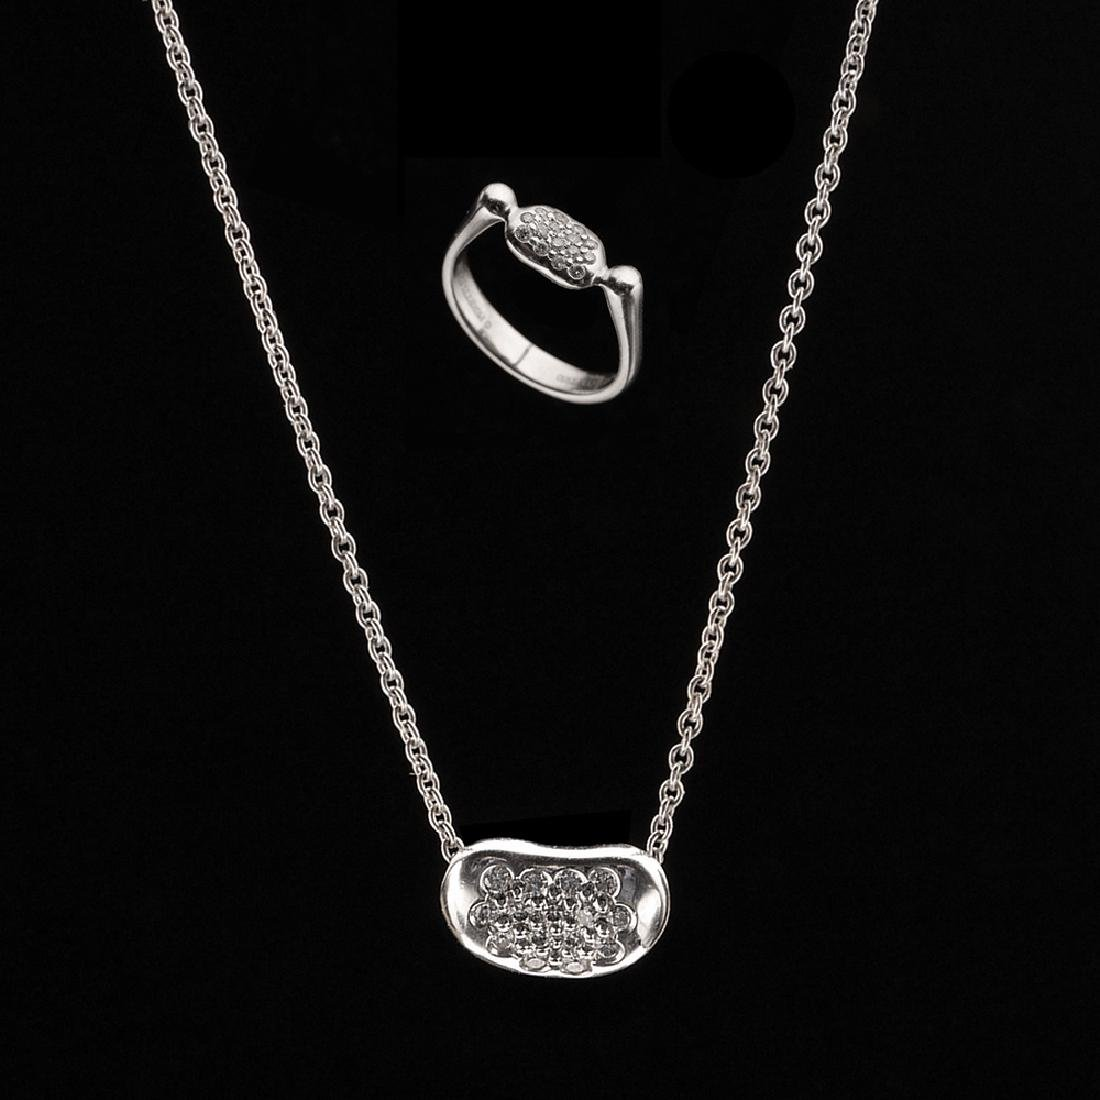 TIFFANY&CO PLATINUM RING AND PENDANT SET